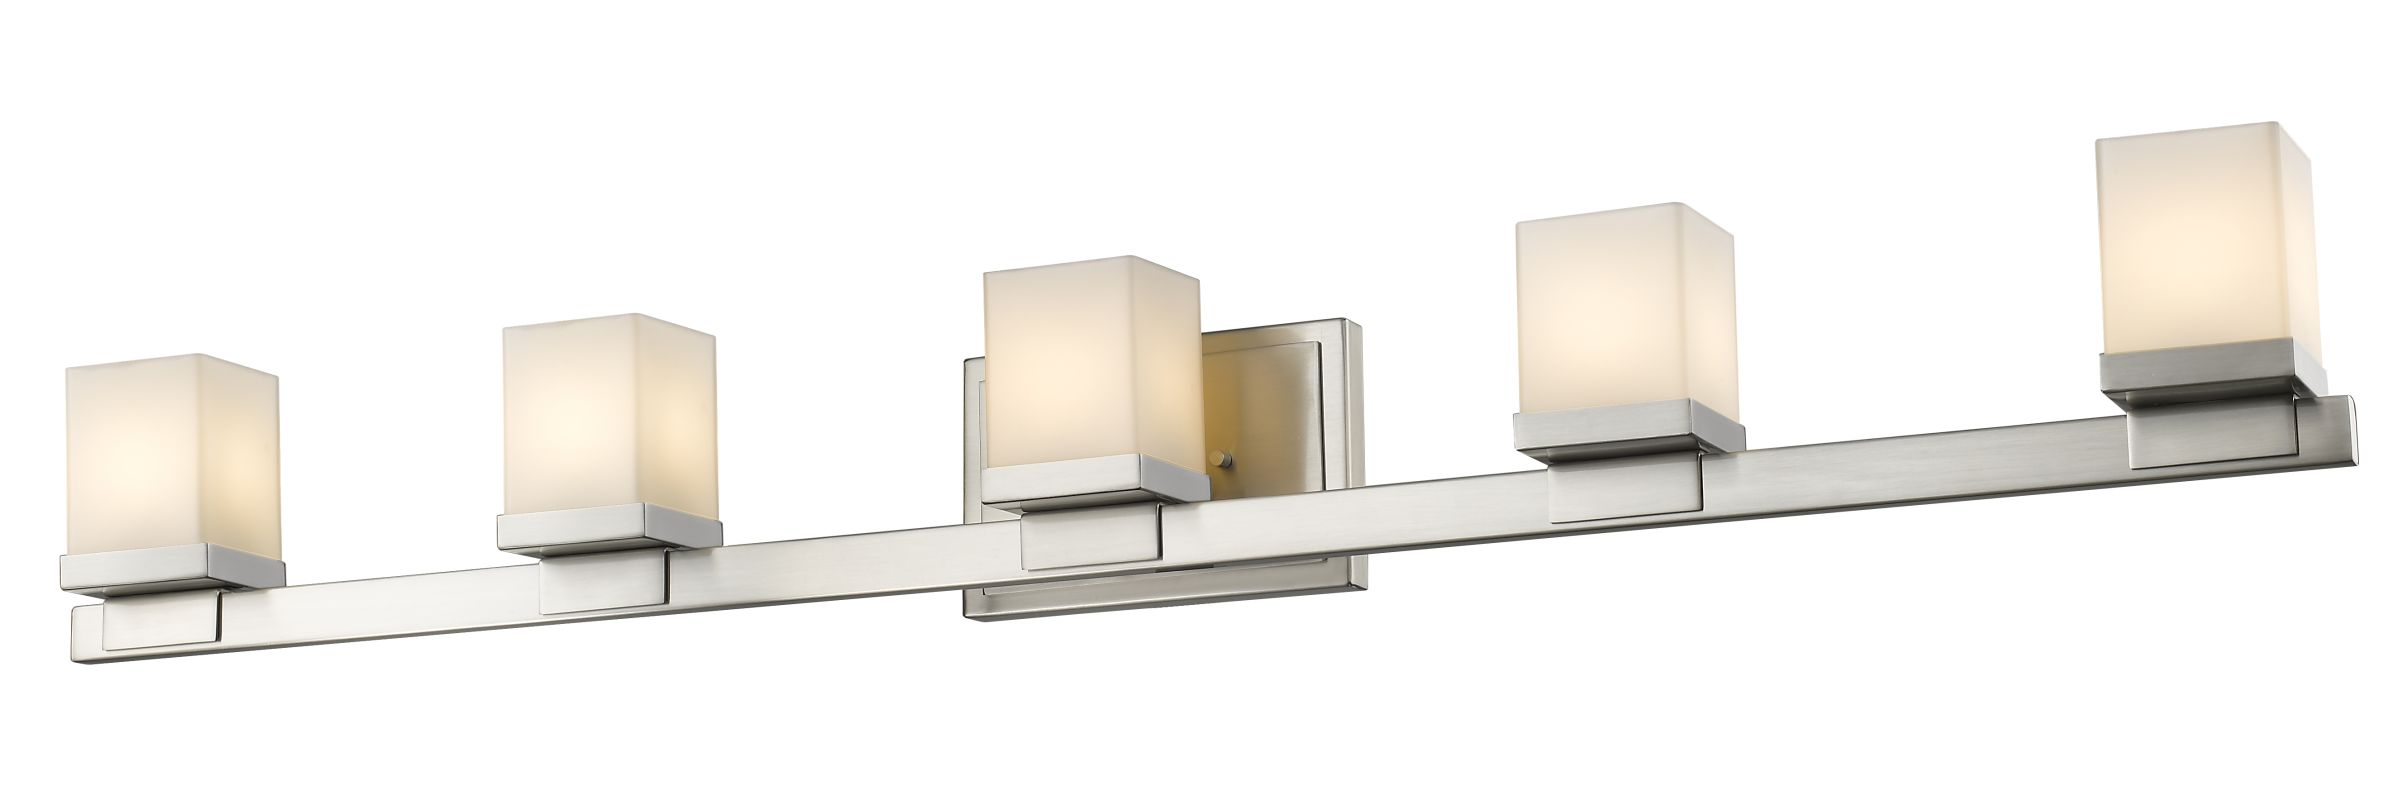 nickel cadiz 5 light bathroom vanity fixture. Black Bedroom Furniture Sets. Home Design Ideas